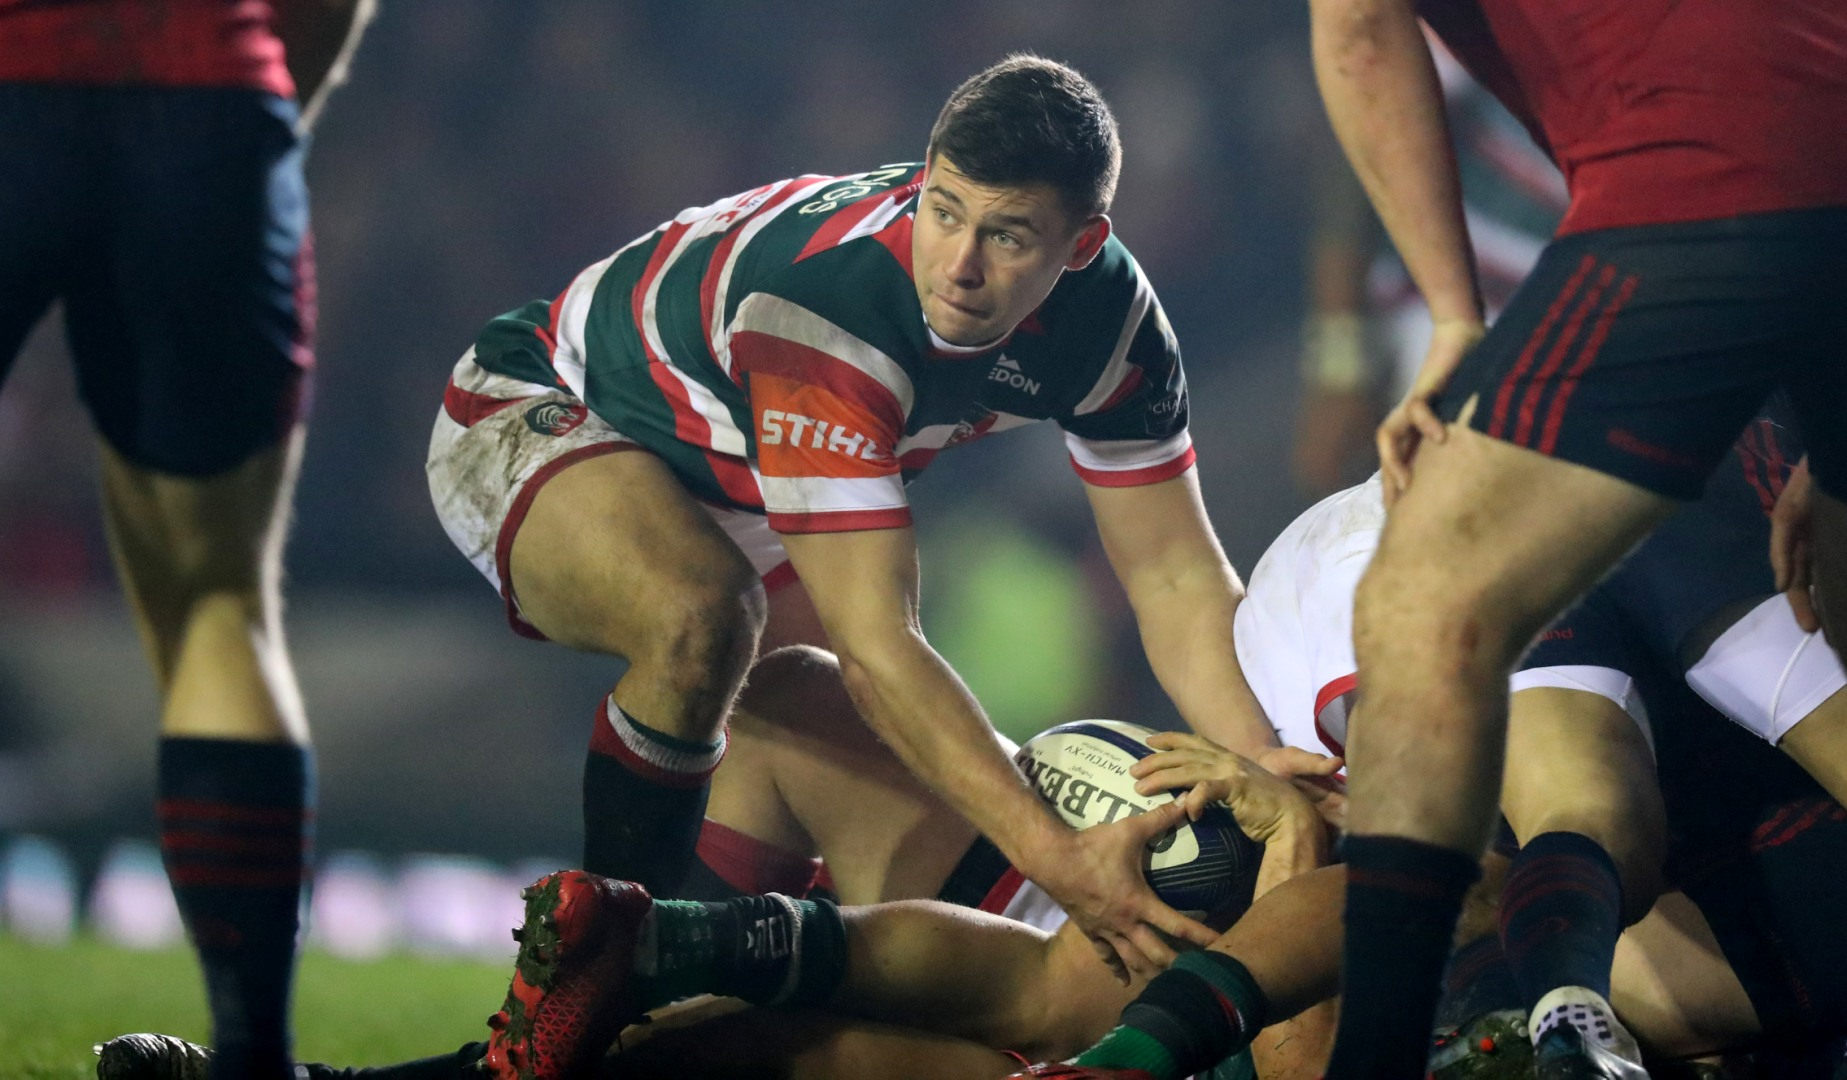 LionsWatch: Youngs shines in dominant Leicester win over Newcastle